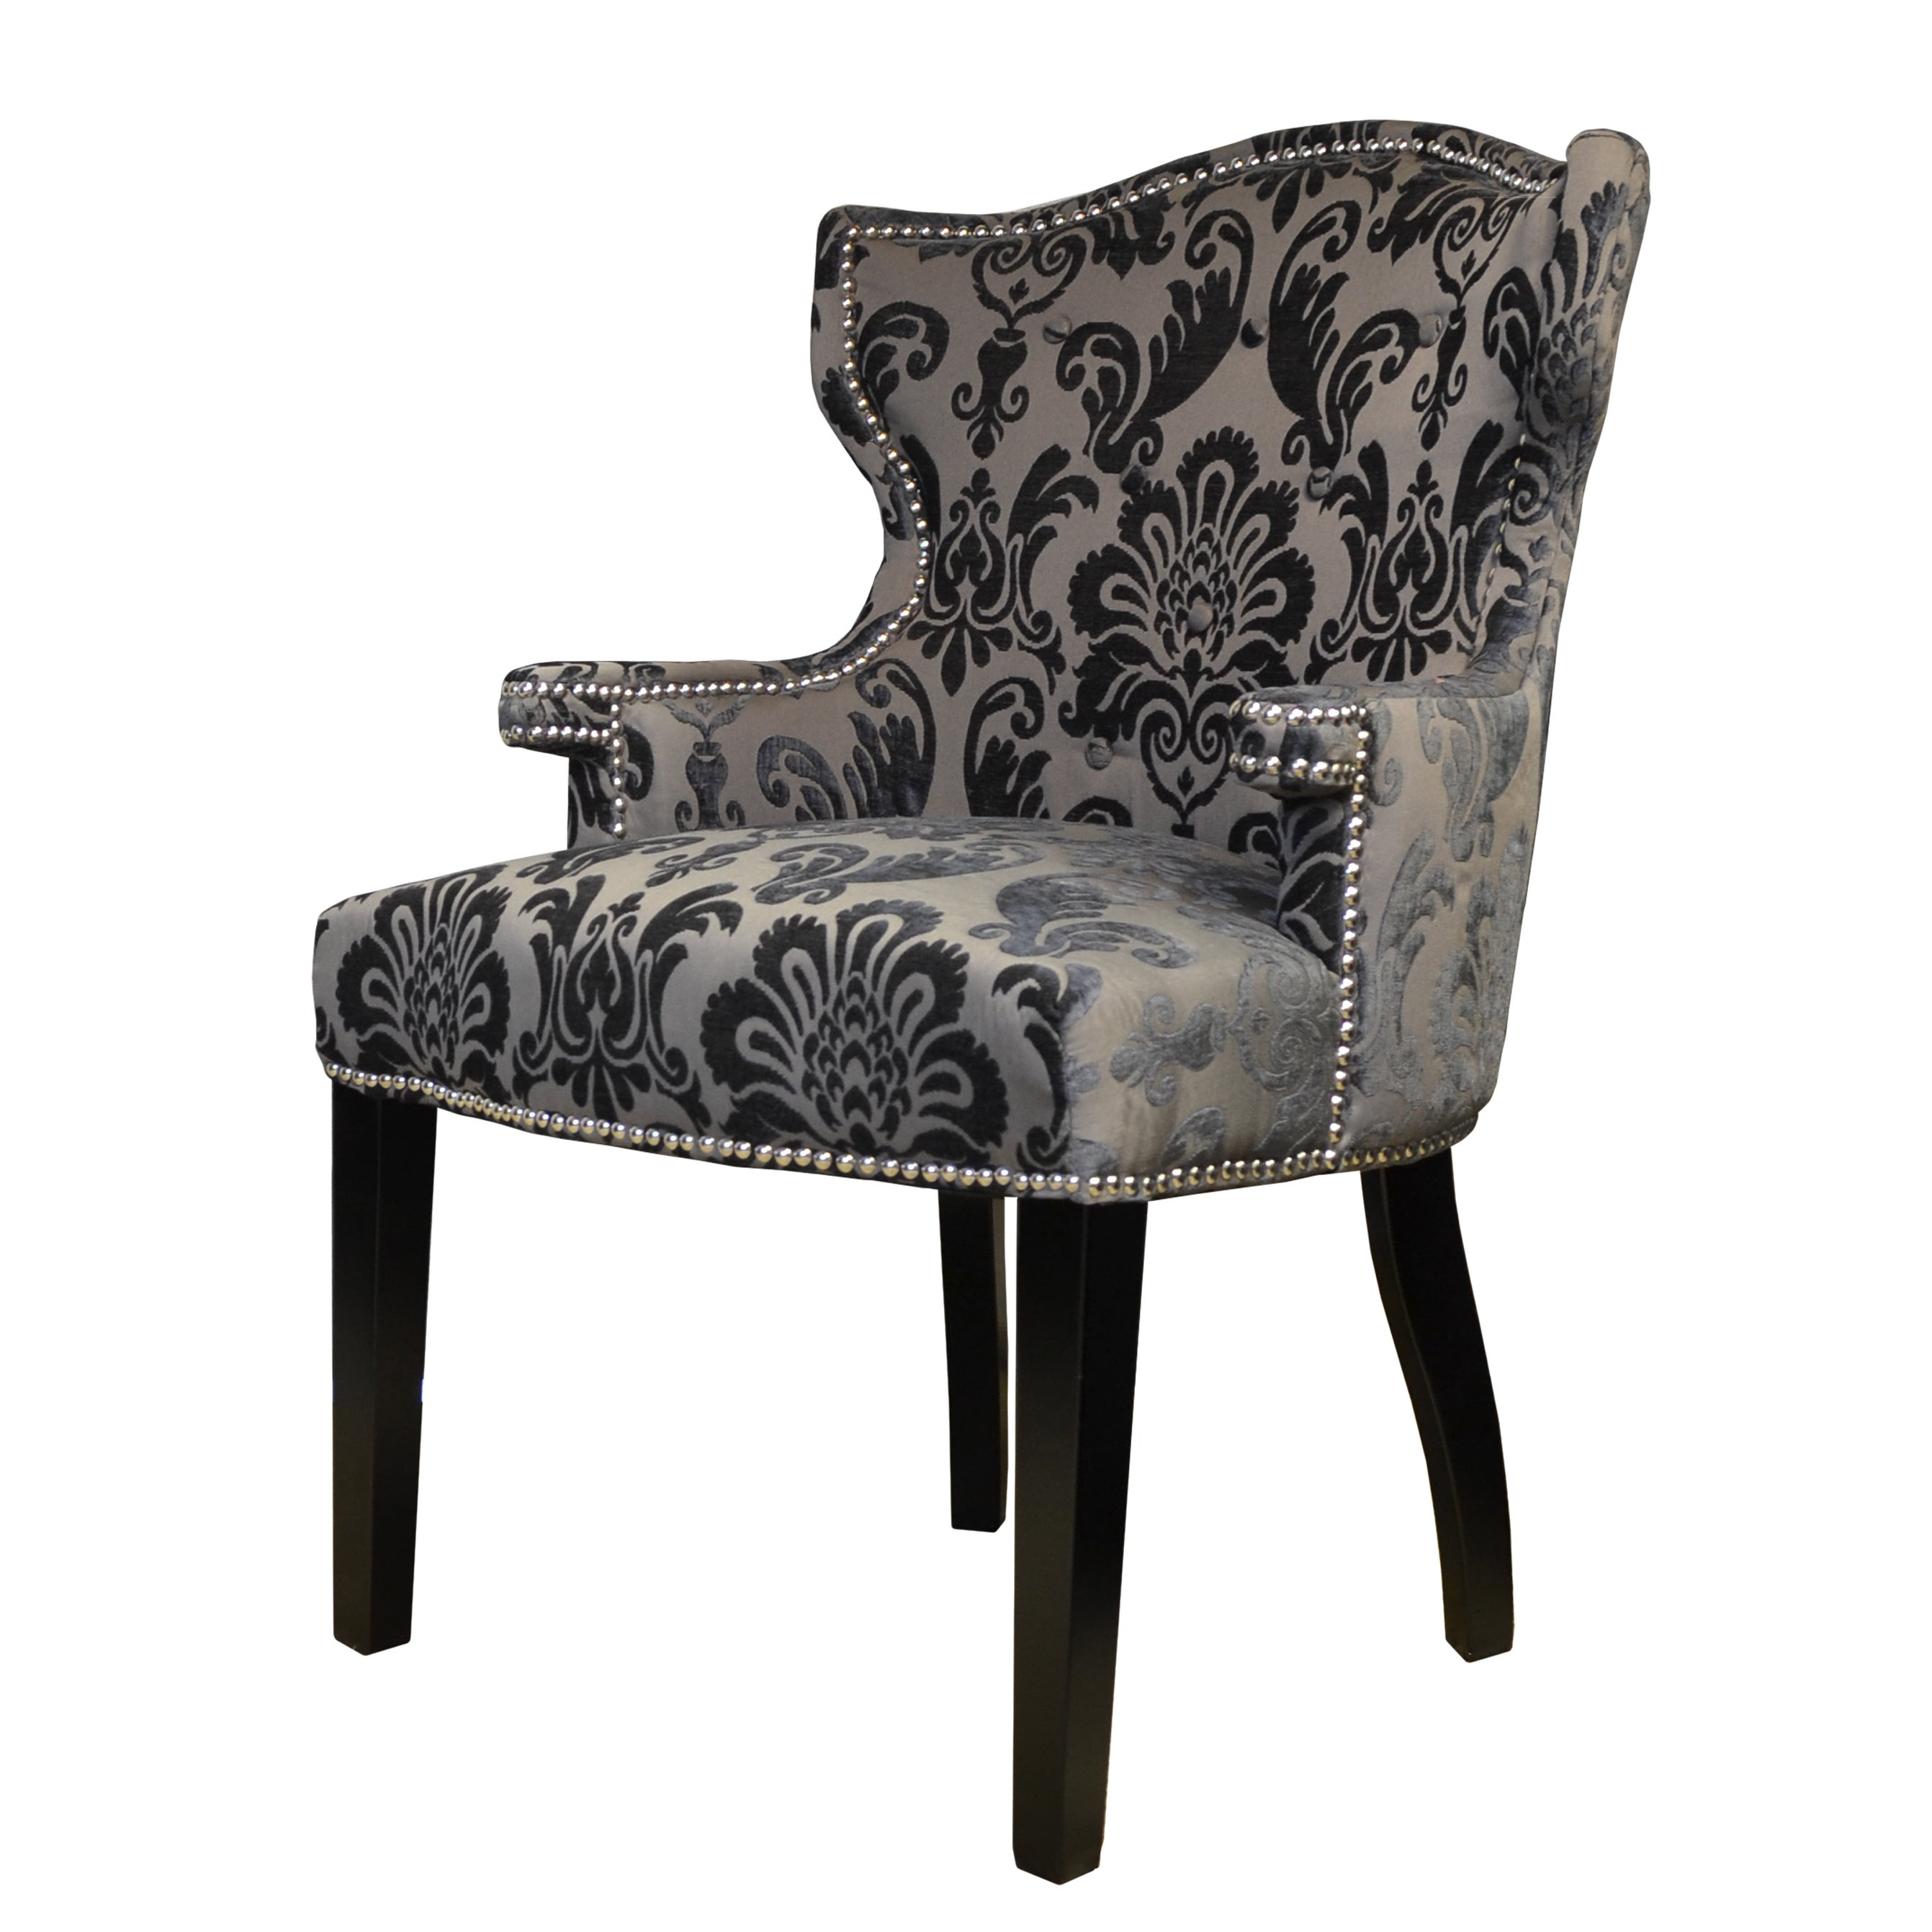 Merveilleux Shop Brittania Chair Brown Gray Damask Armchair   Free Shipping Today    Overstock.com   12355389